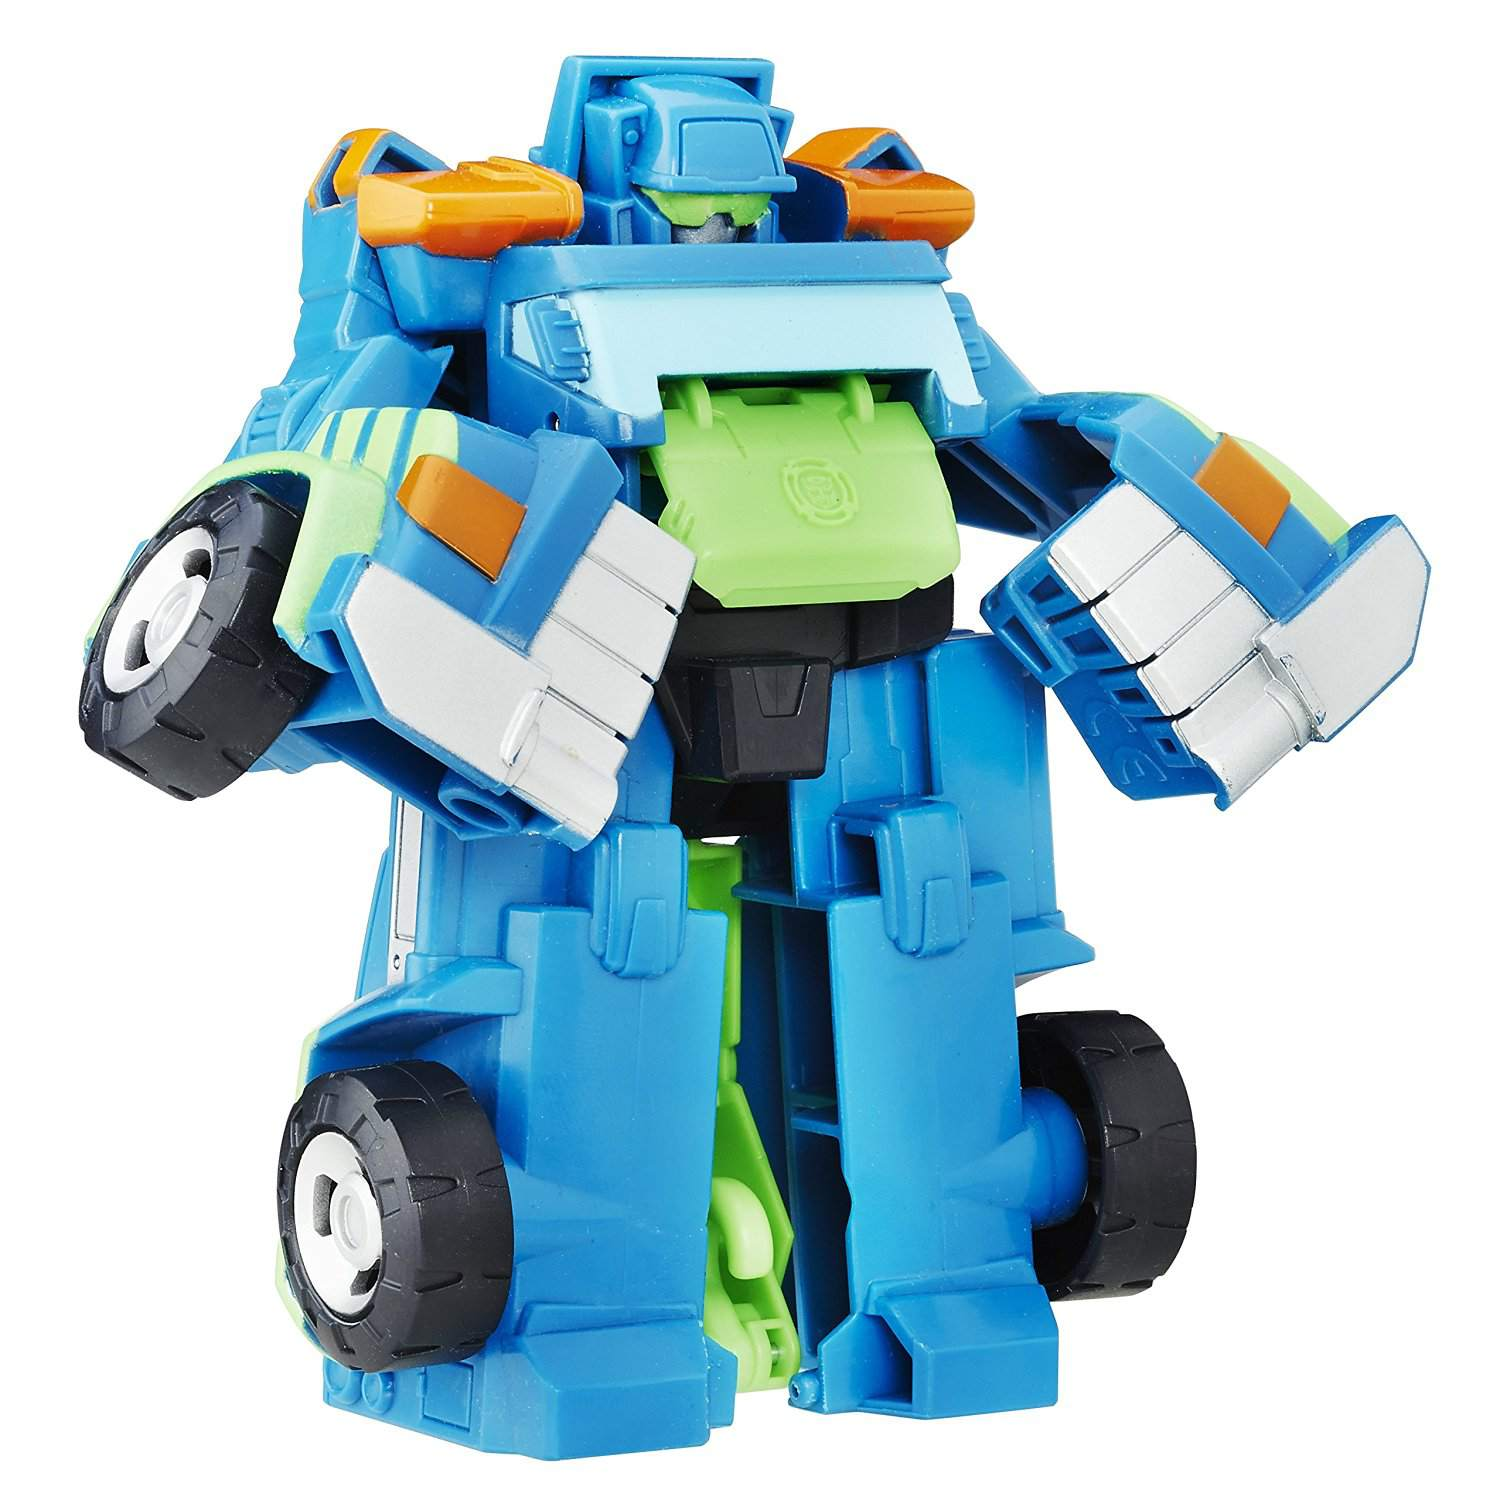 Target Transformers Toys For Boys : Exelent target toys for boys age image collection